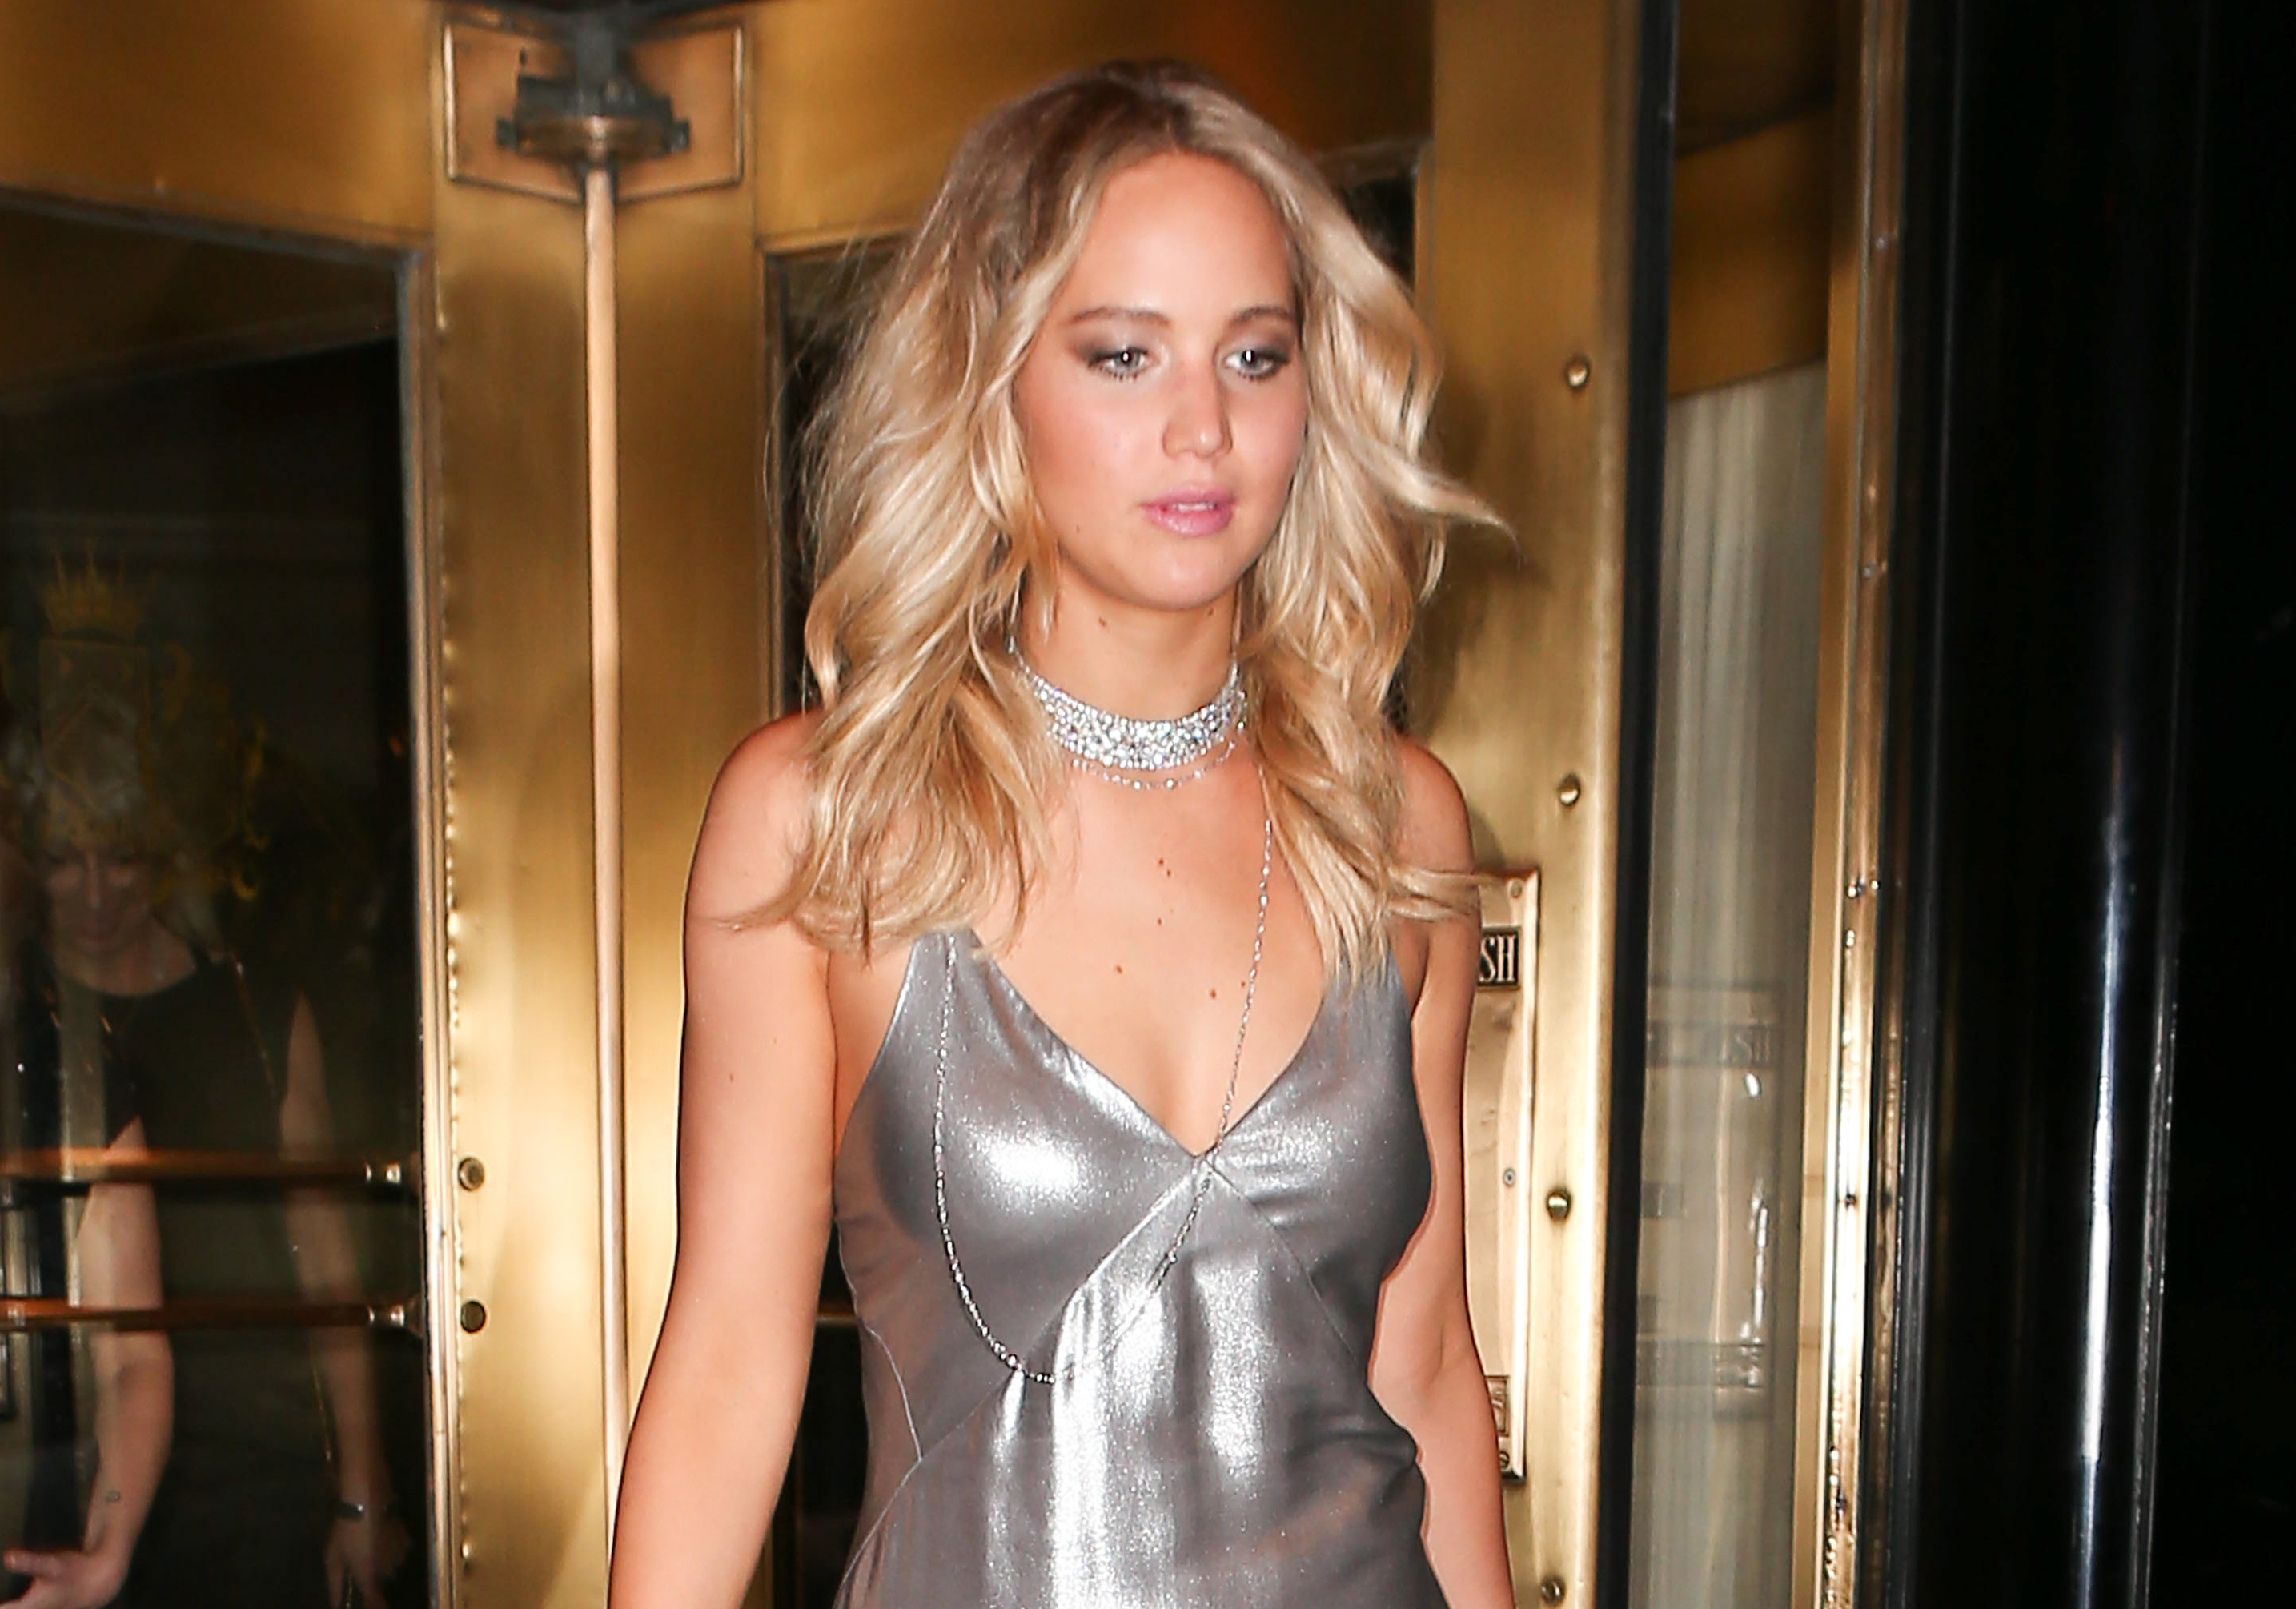 Jennifer lawrence changes into shiny silver dress for met gala after jennifer lawrence changes into shiny silver dress for met gala after party 2015 2015 met gala jennifer lawrence met gala just jared altavistaventures Image collections